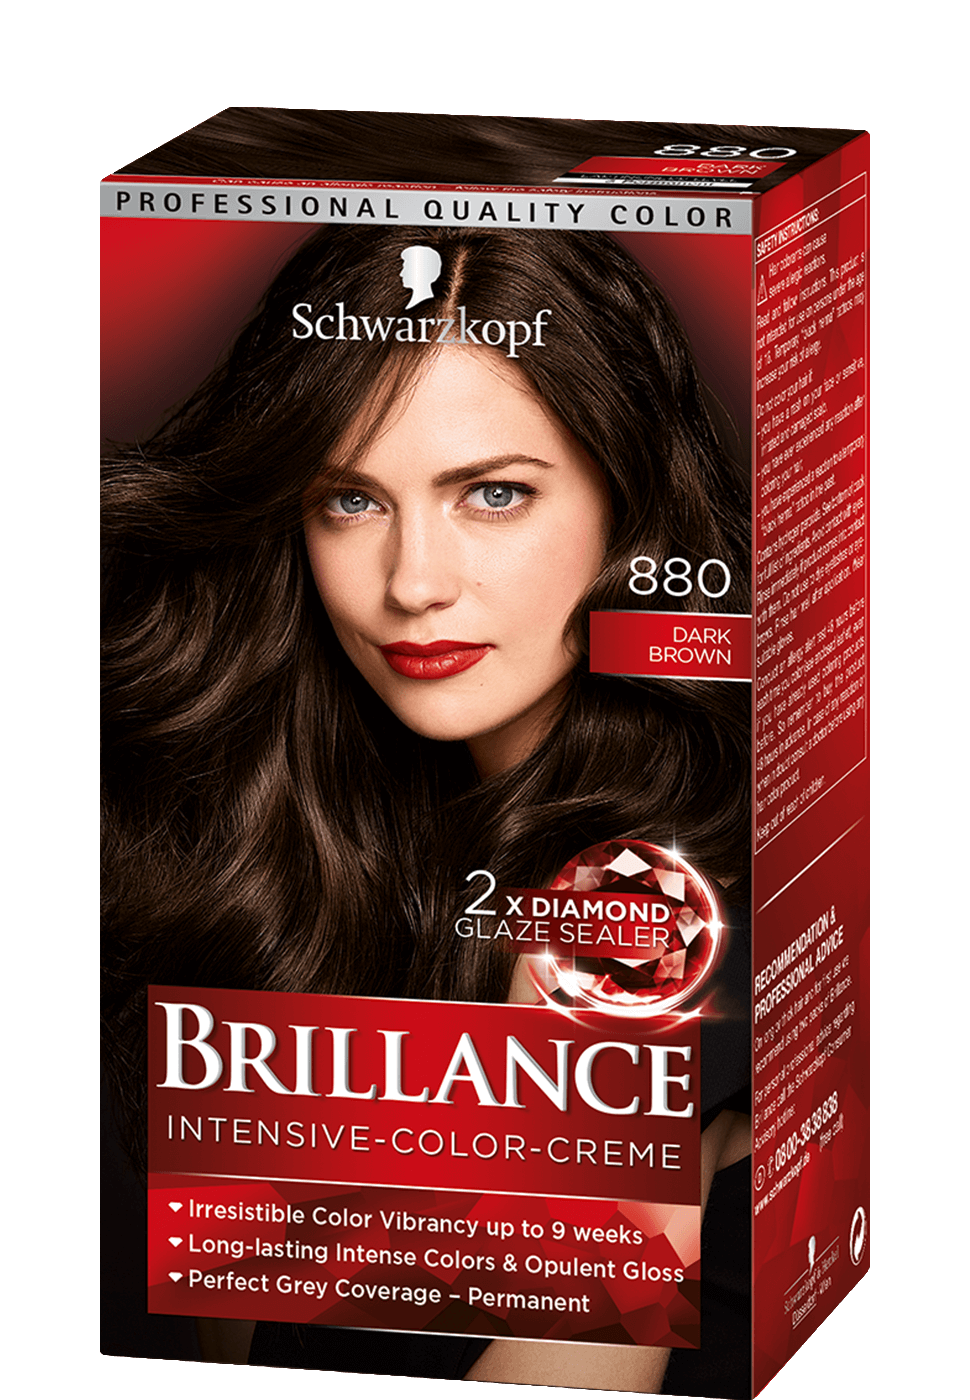 brillance_com_intensive_color_creme_880_dark_brown_970x1400